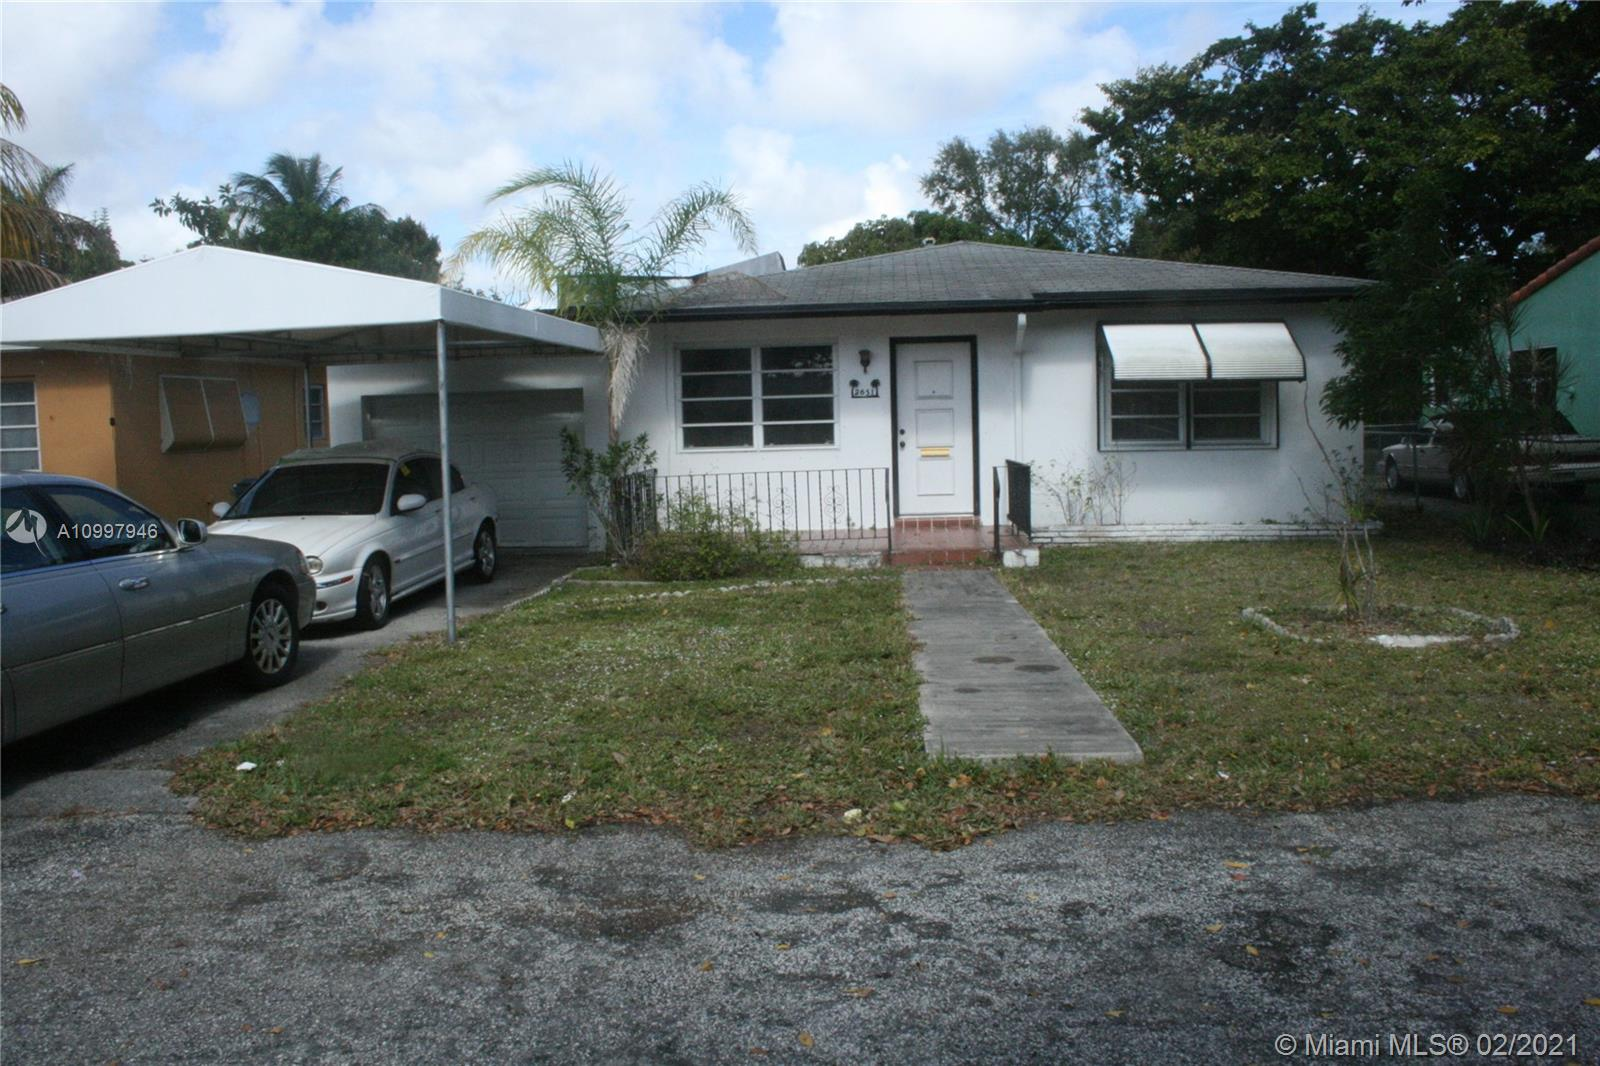 Hollywood Little Ranches, 2651 Taylor St, Hollywood, Florida 33020